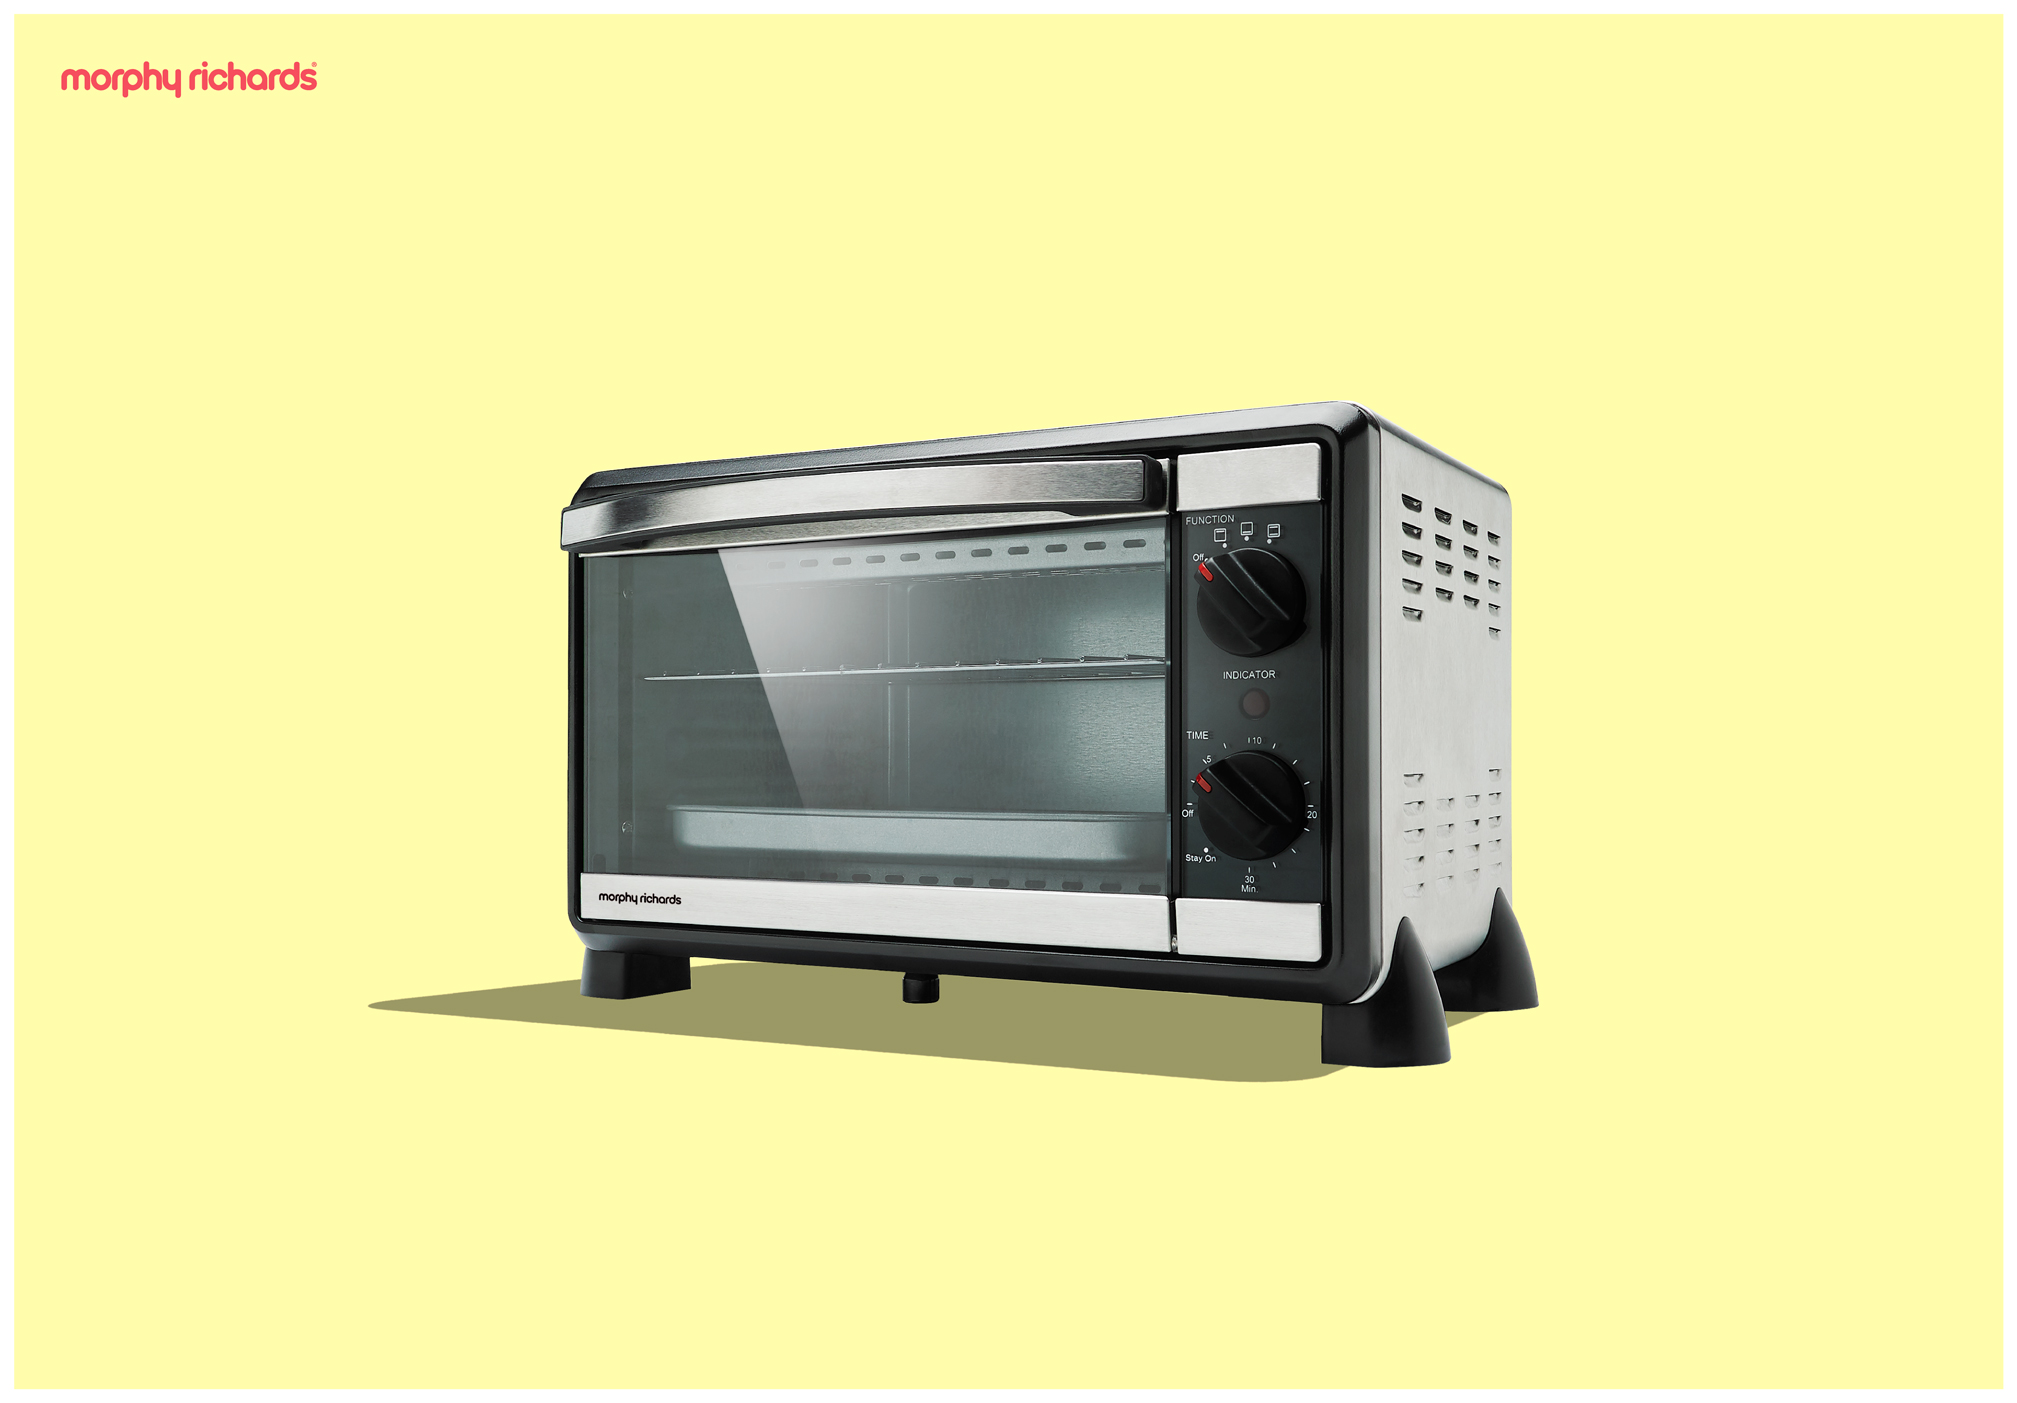 morphy richards, OTG, product, product photography